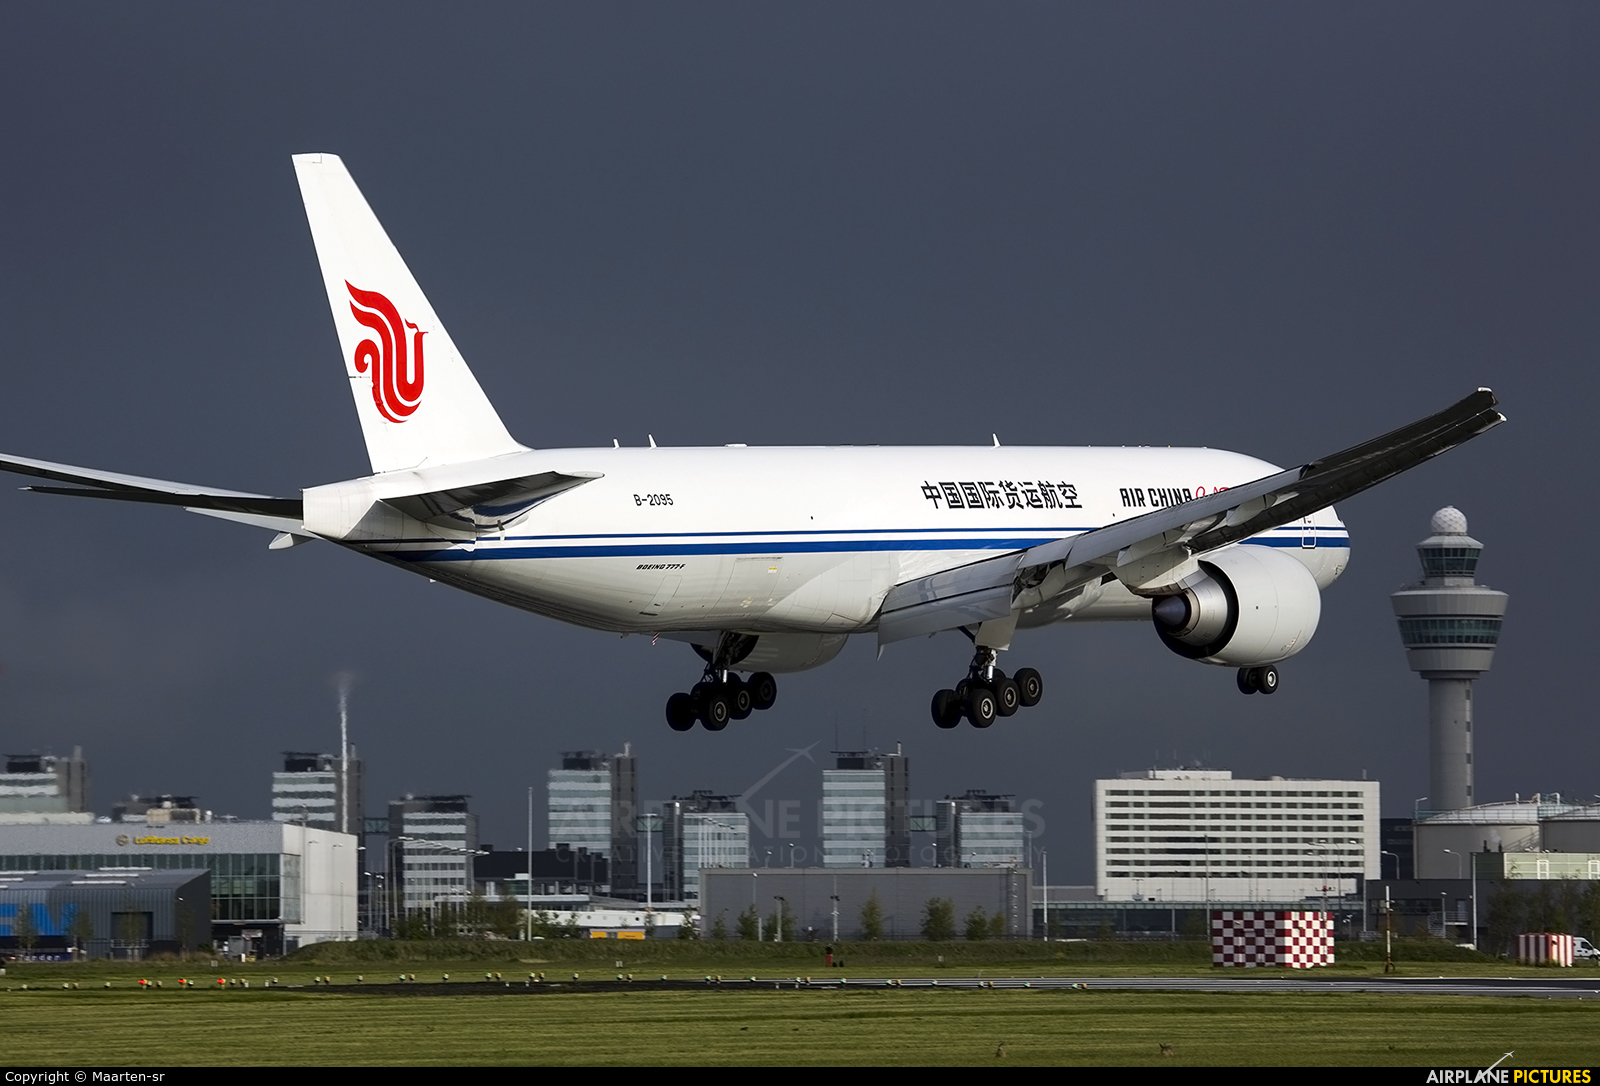 Air China Cargo B-2095 aircraft at Amsterdam - Schiphol